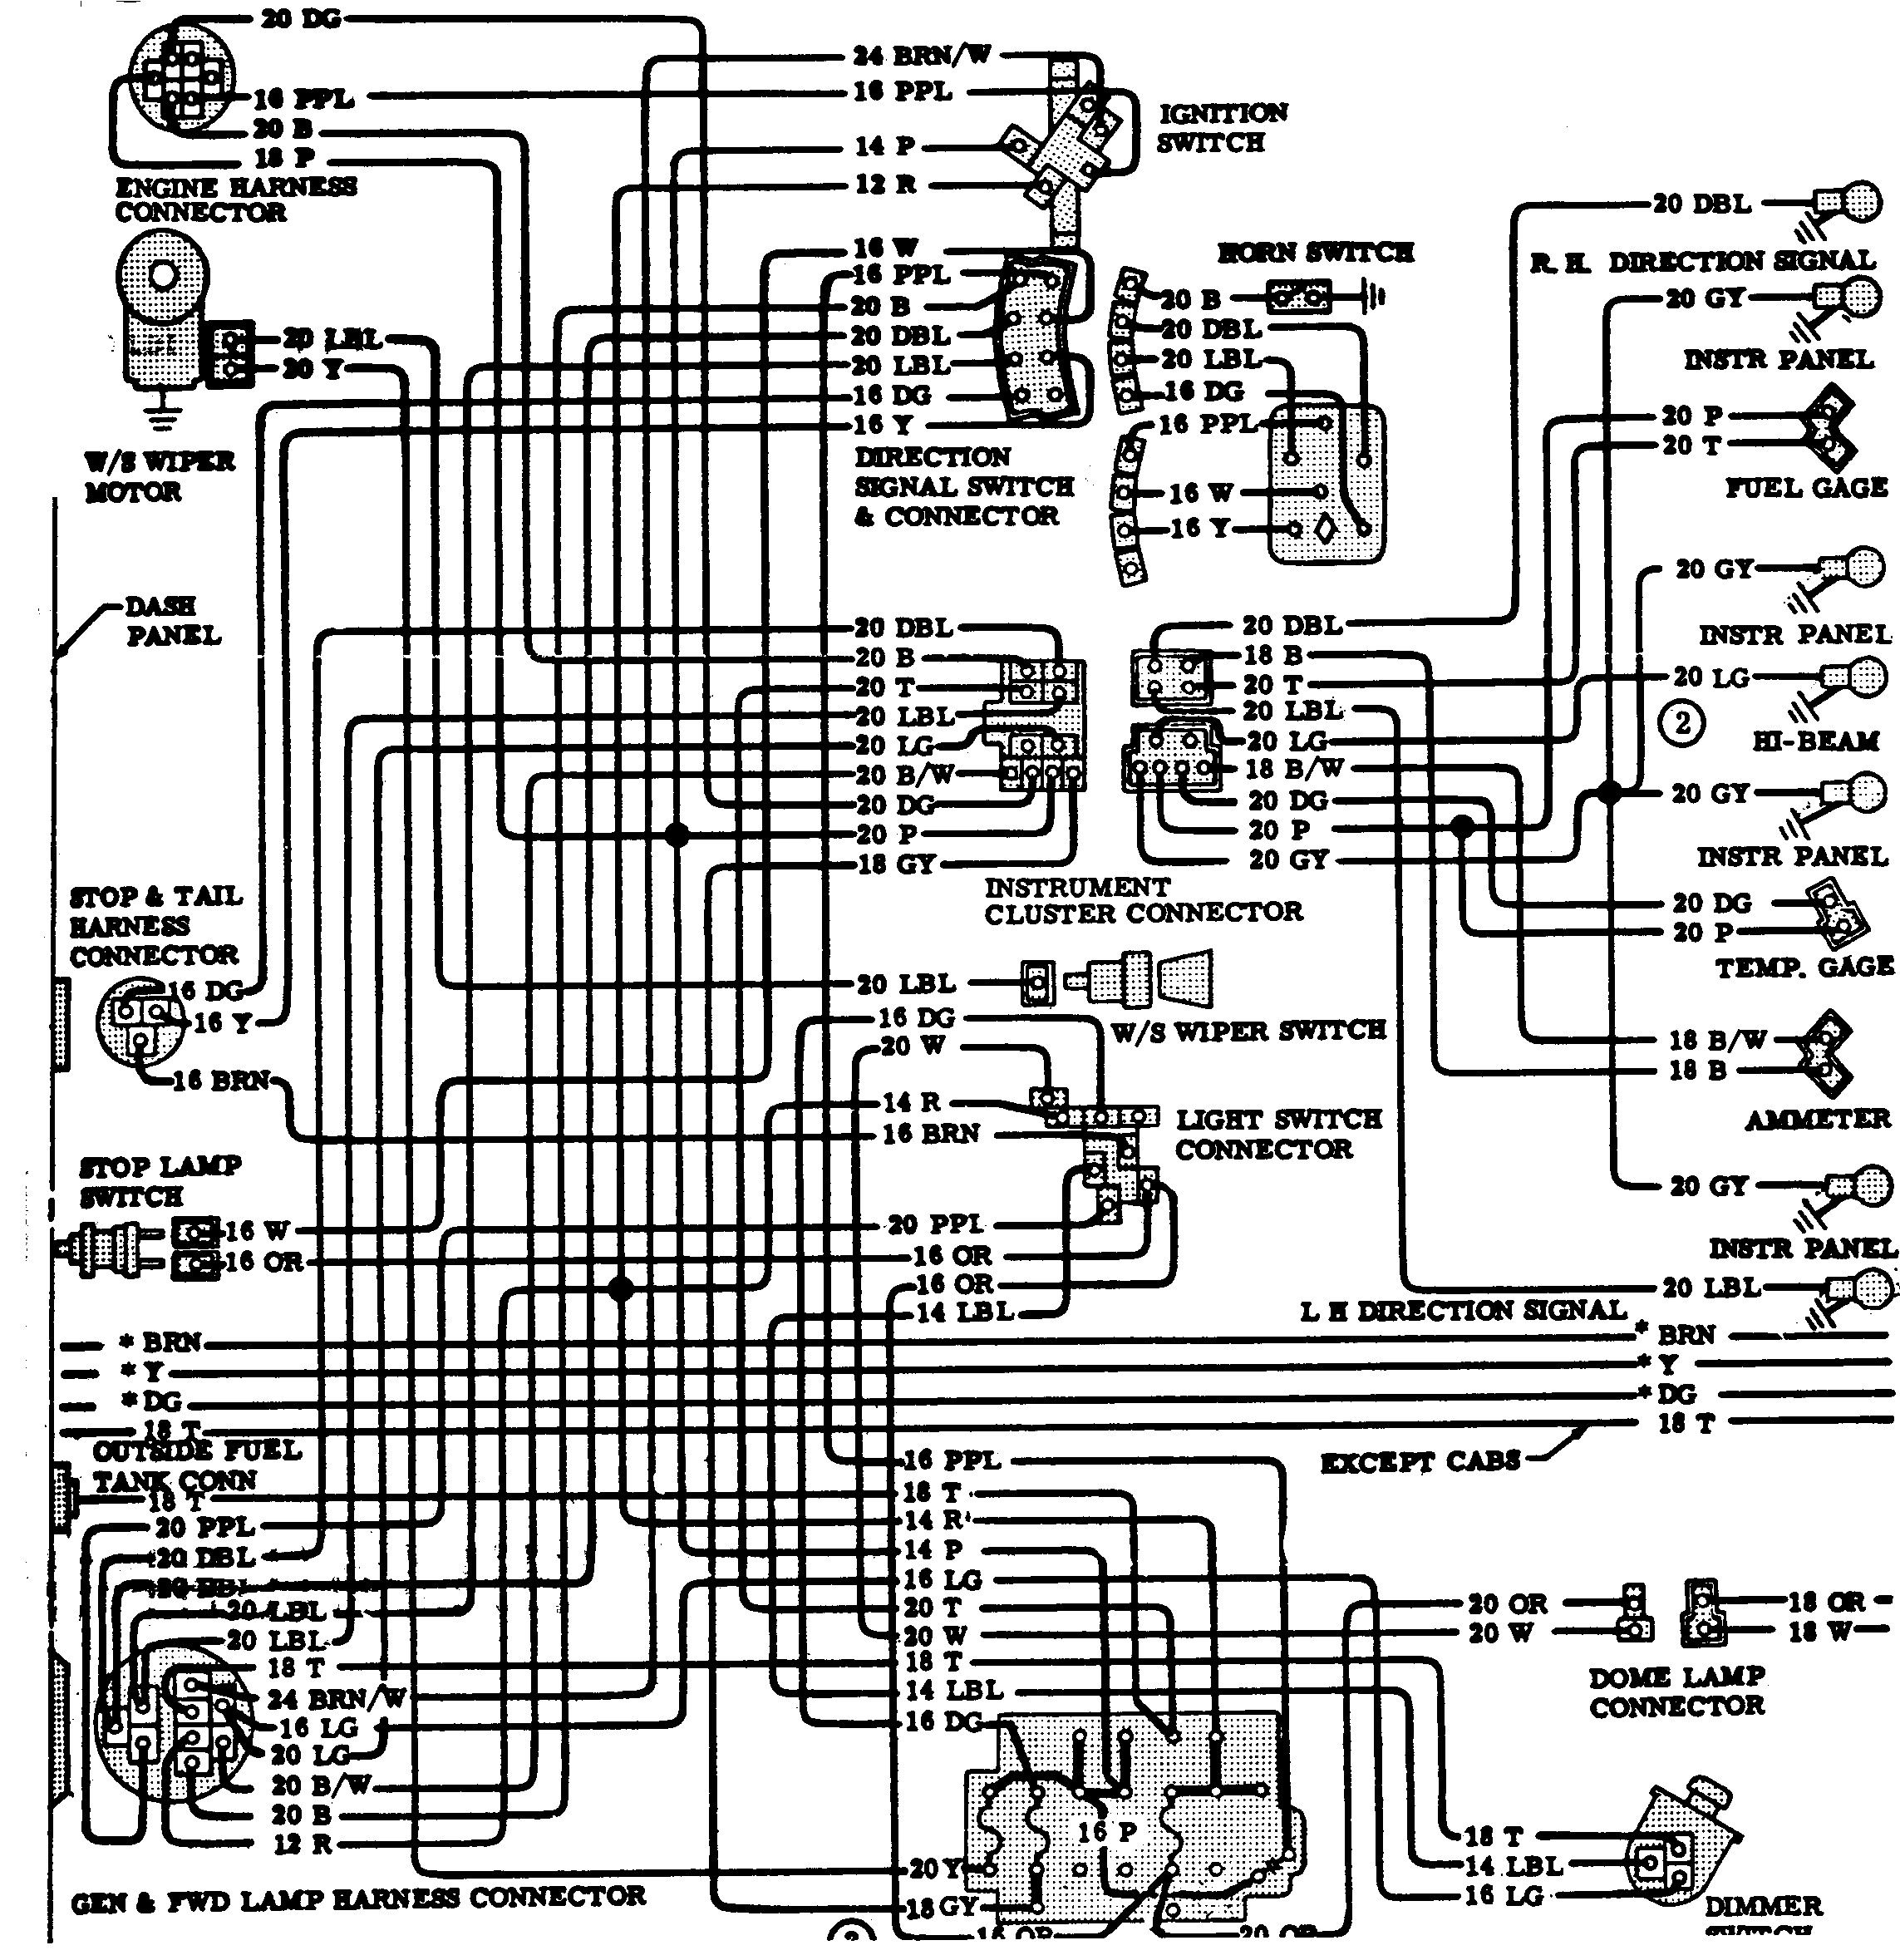 64 chevy truck wiring diagram - wiring diagram harsh-usage-a -  harsh-usage-a.agriturismoduemadonne.it  agriturismoduemadonne.it